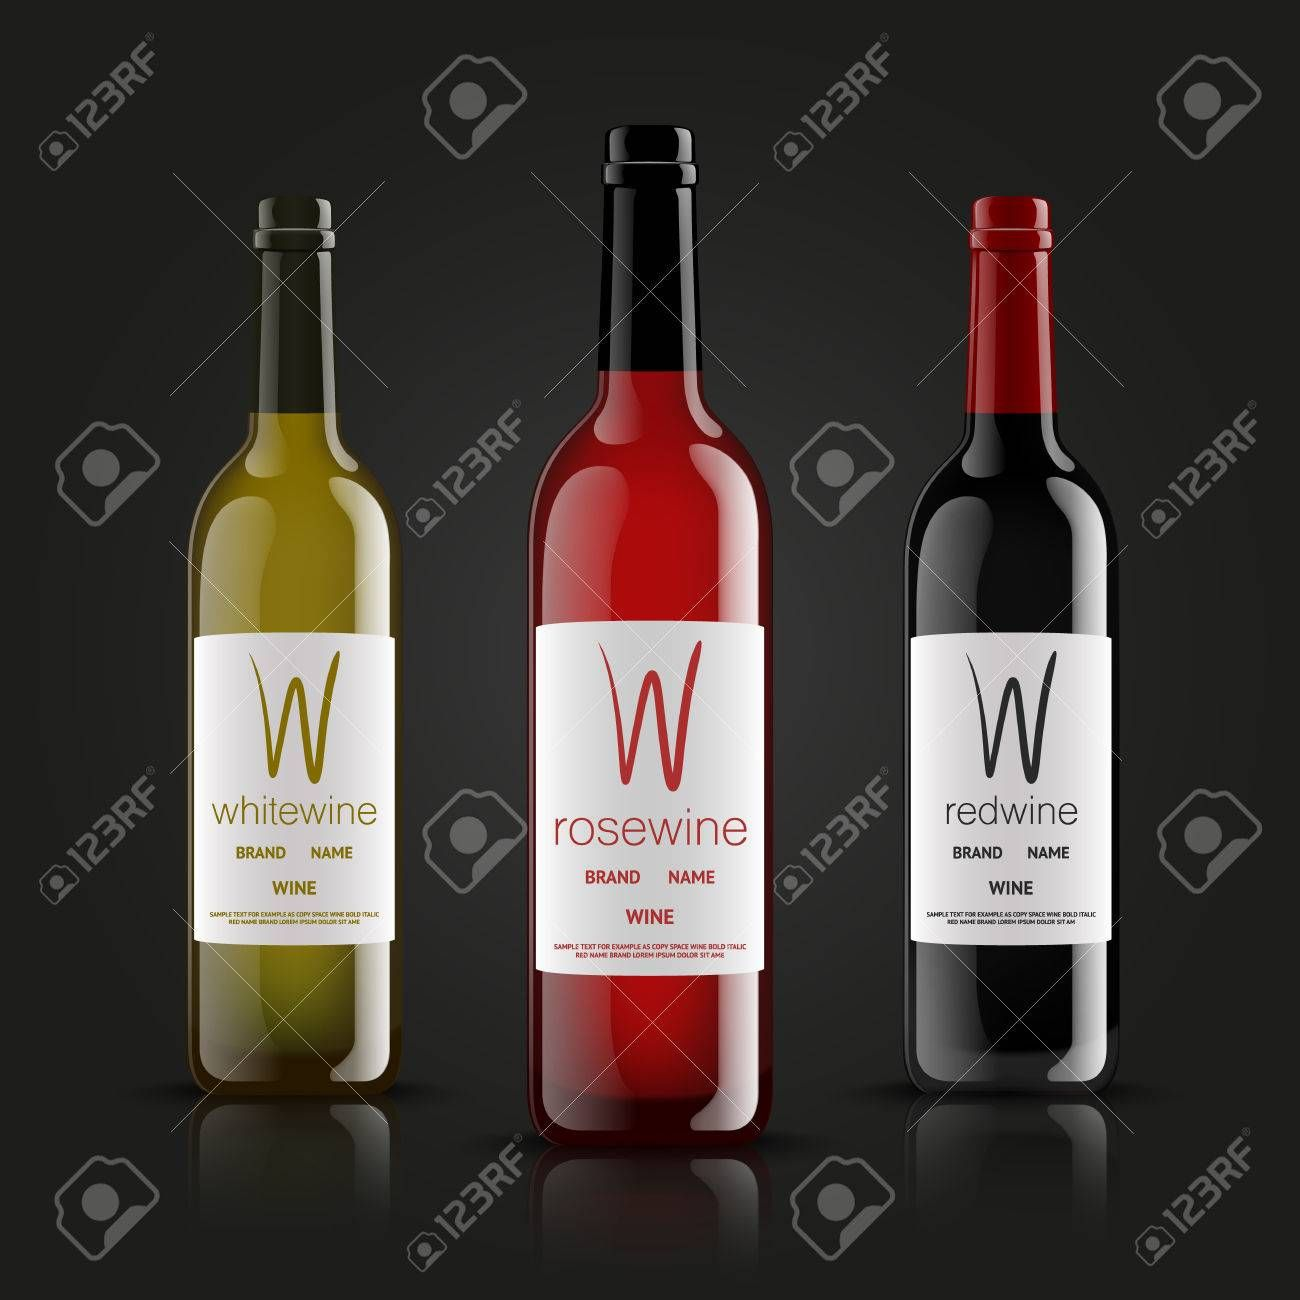 Vector Wine Bottles Made In A Realistic Style On A Dark Background Green Red And Black Mock Up Spon Realistic S In 2020 Wine Brands Wine Names Wine Bottle